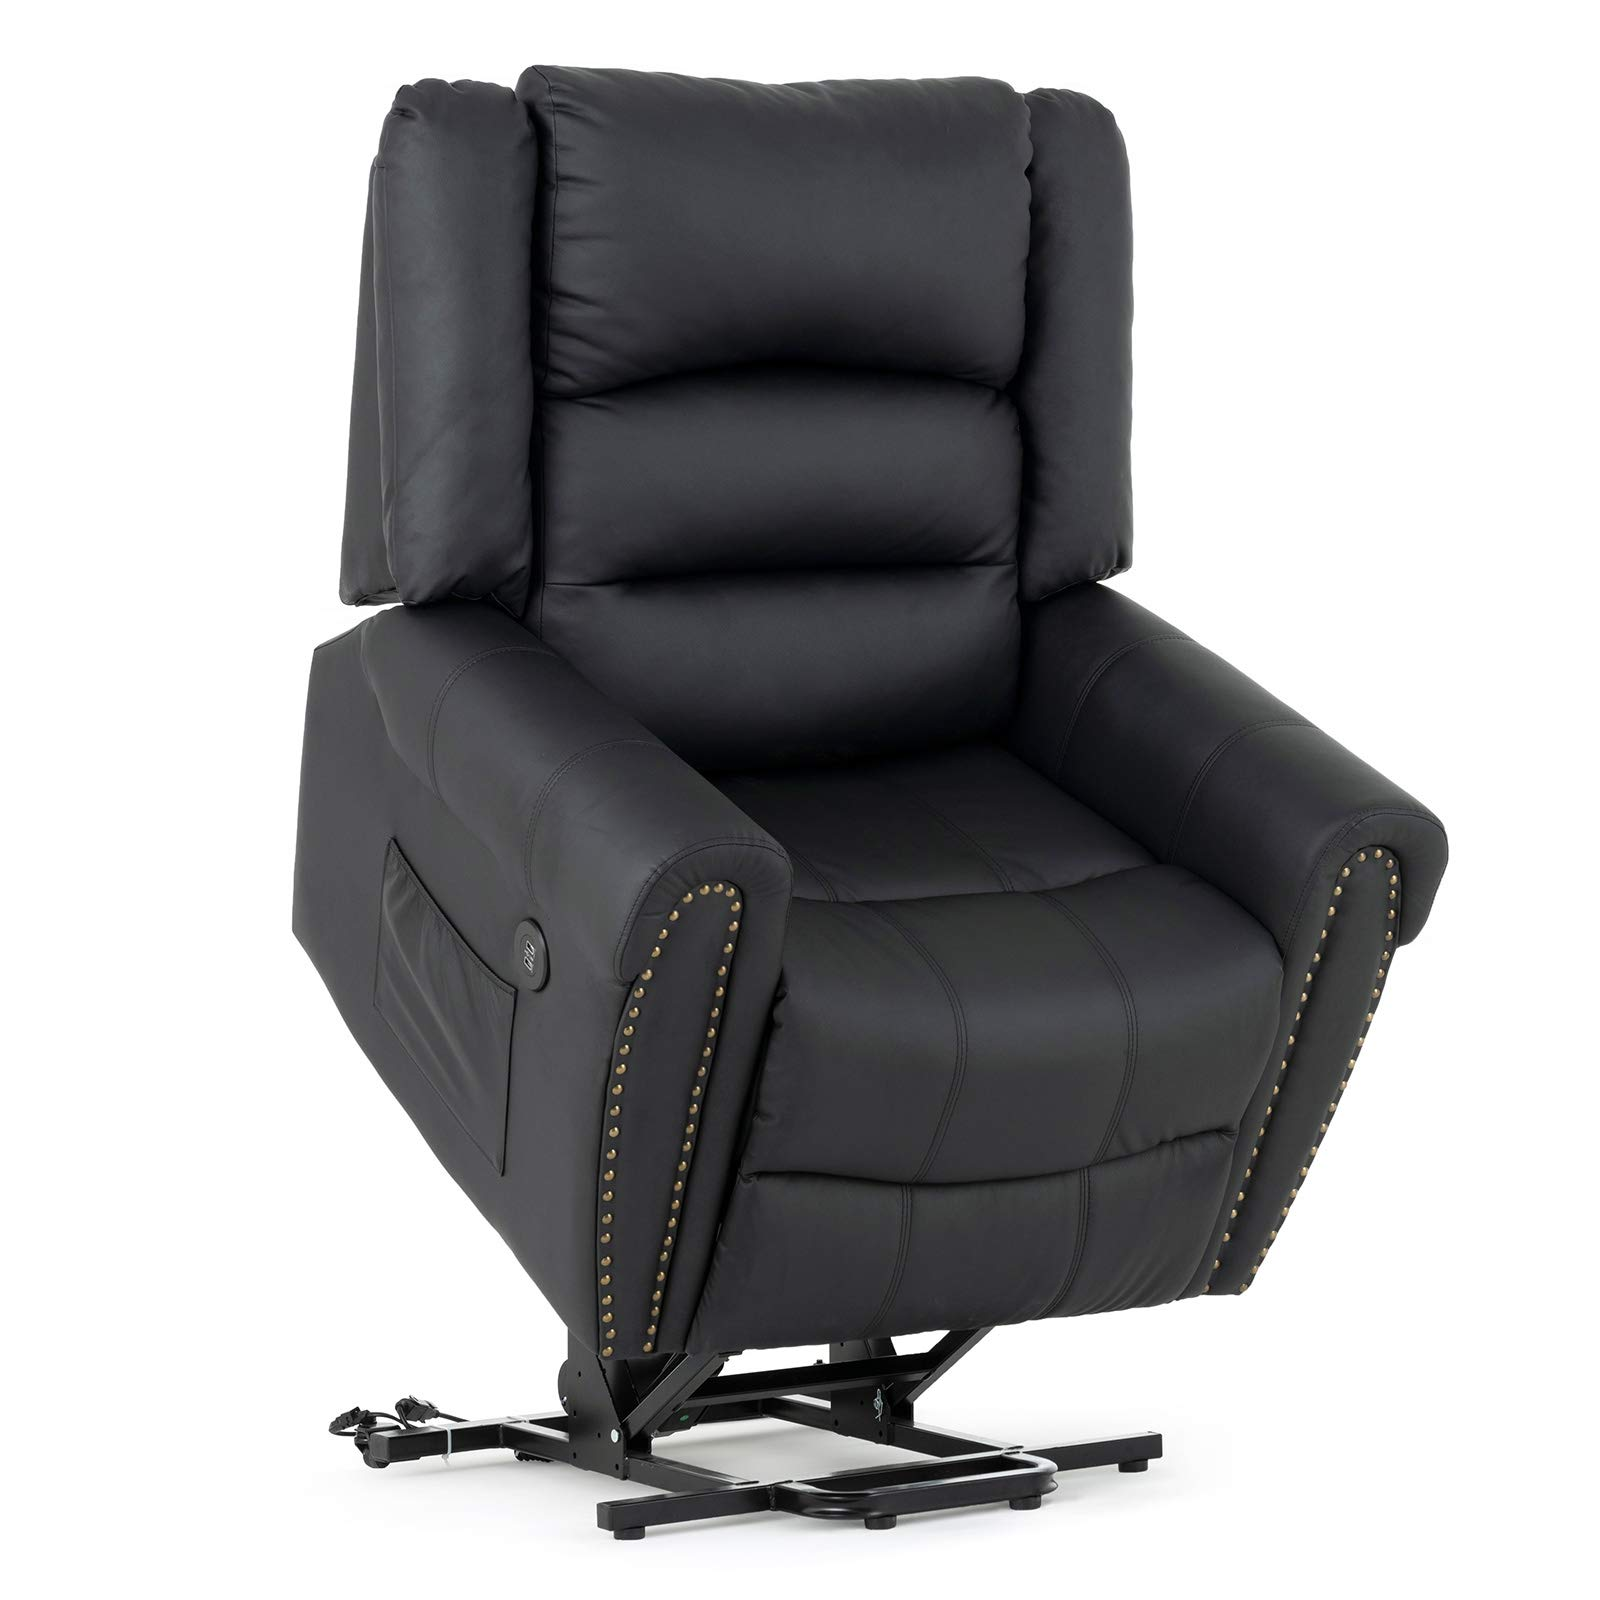 Mecor Power Lift Chair,Lift Recliners for Elderly,Reclining Lift Chairs with Dual Motor,Pu Leather Sleeper Recliner Chair with Massage/Heat/Vibration/Remote Control for Living Room. (Black) by mecor